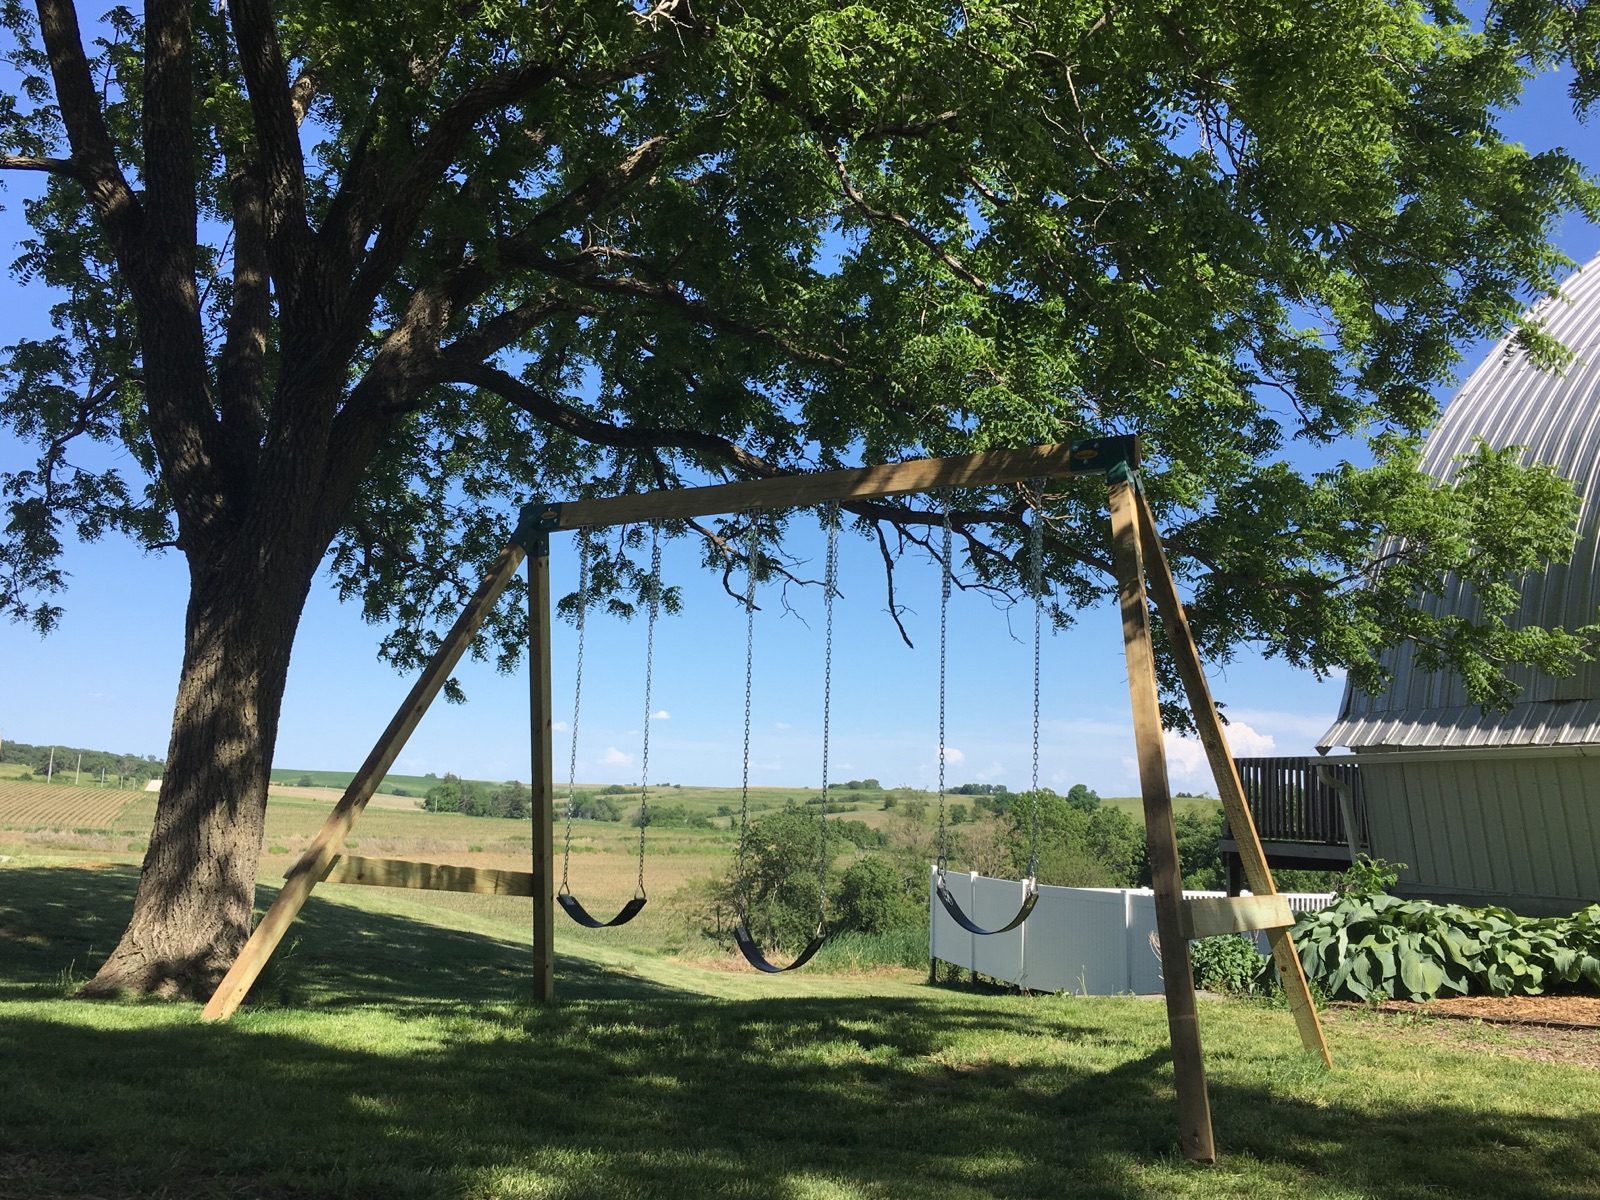 If we built a giant swing... why not three more small ones?!?